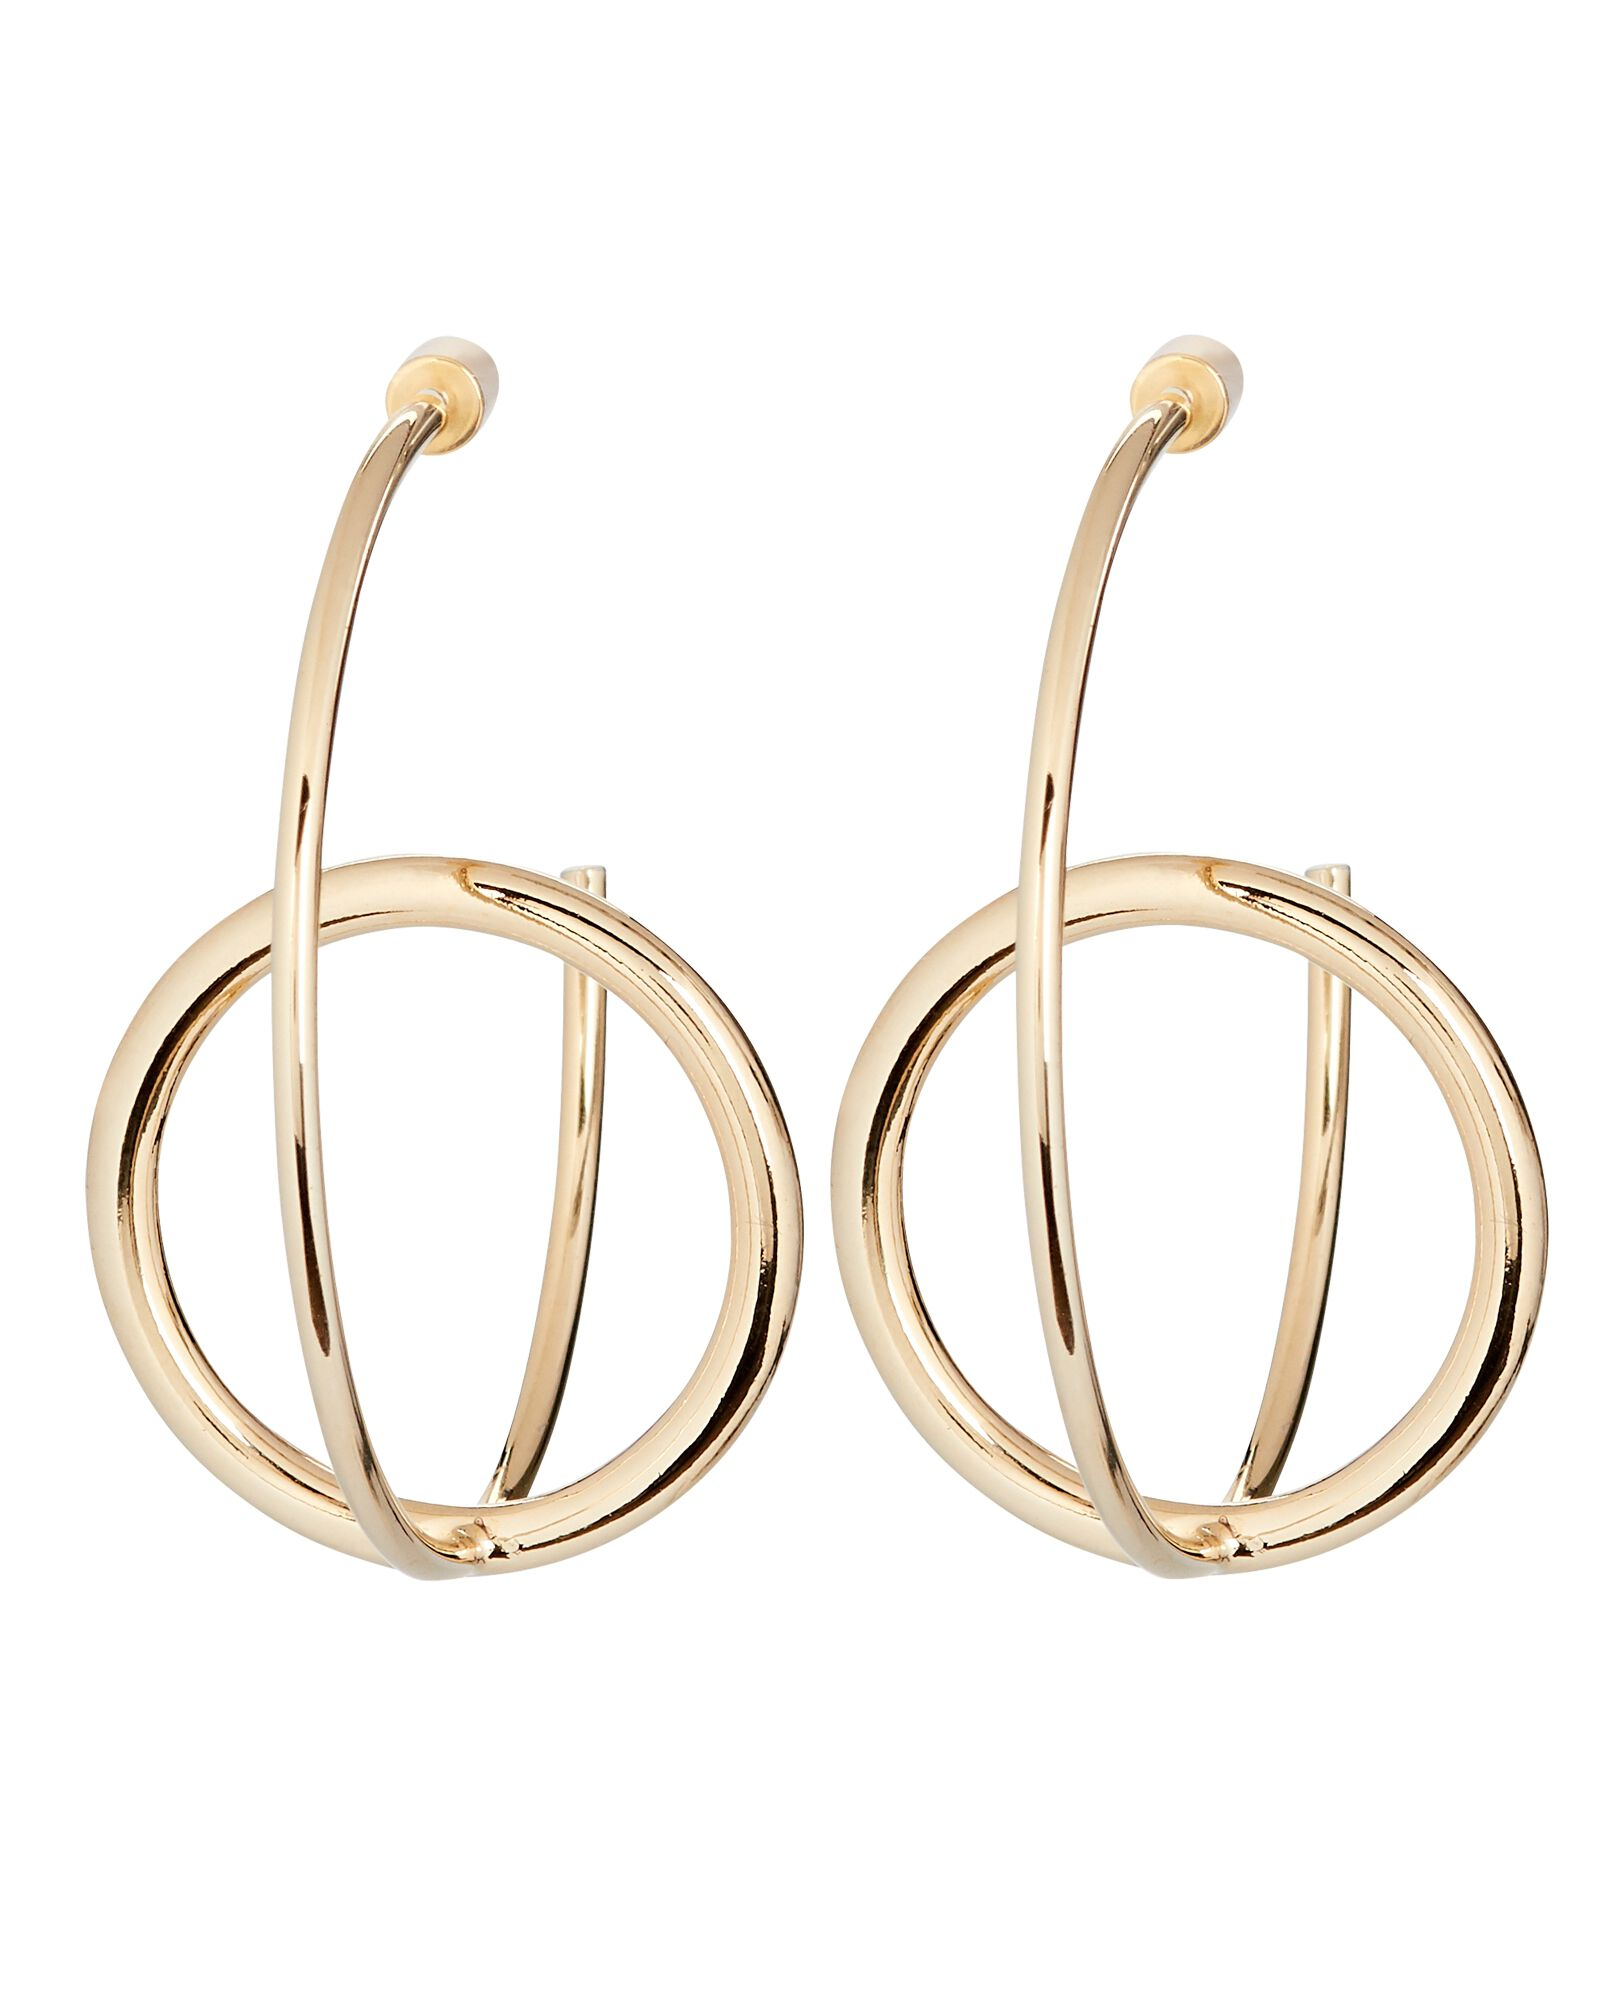 Ana Interlocking Orbit Hoop Earrings, GOLD, hi-res